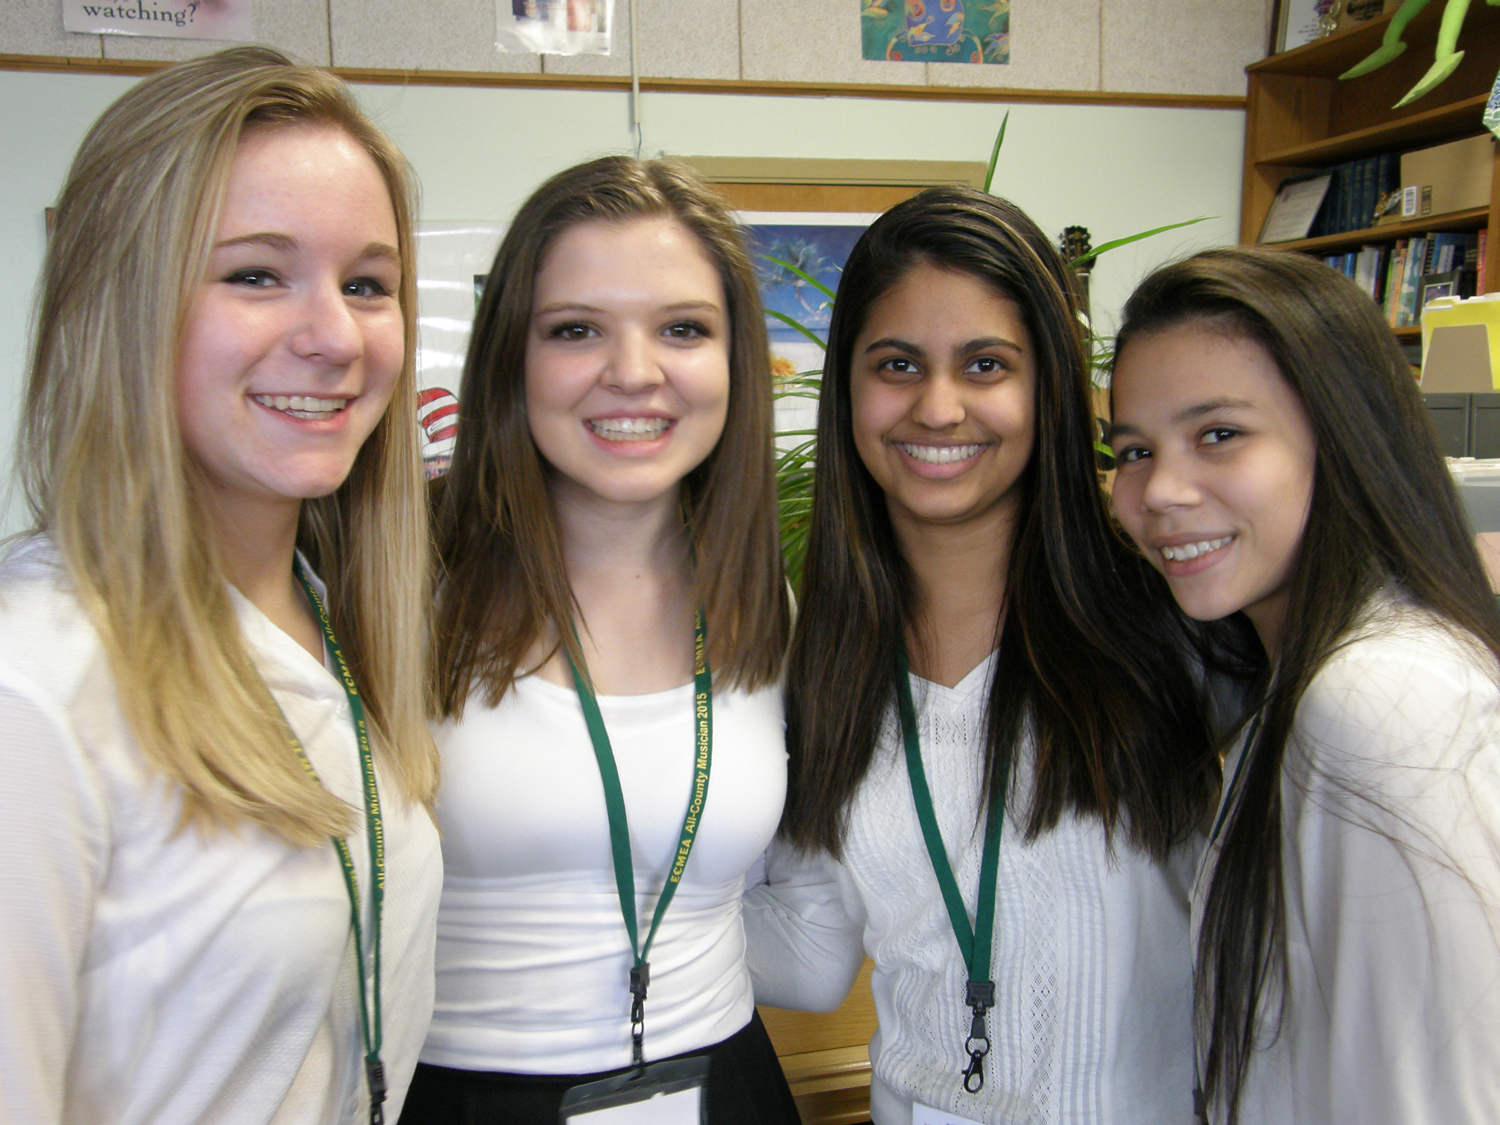 From left to right: Kayleigh Mighells, Emily Burns, Grace Ippolito, Yamilet Montanez